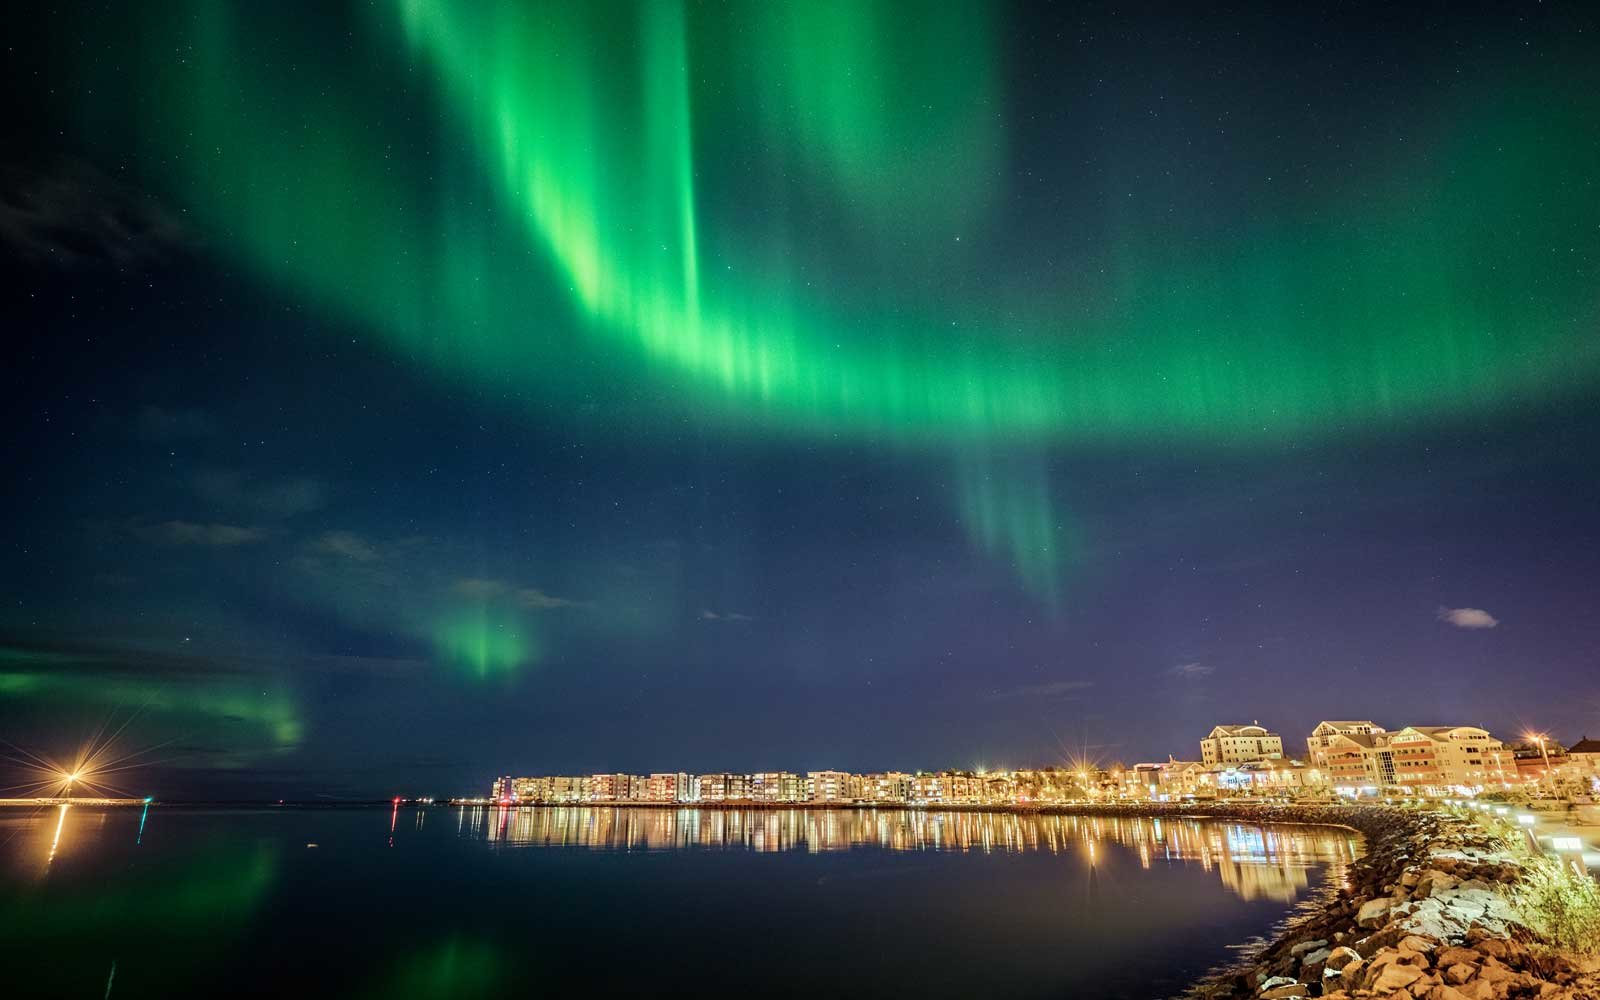 Take a package tour to see the Northern Lights.